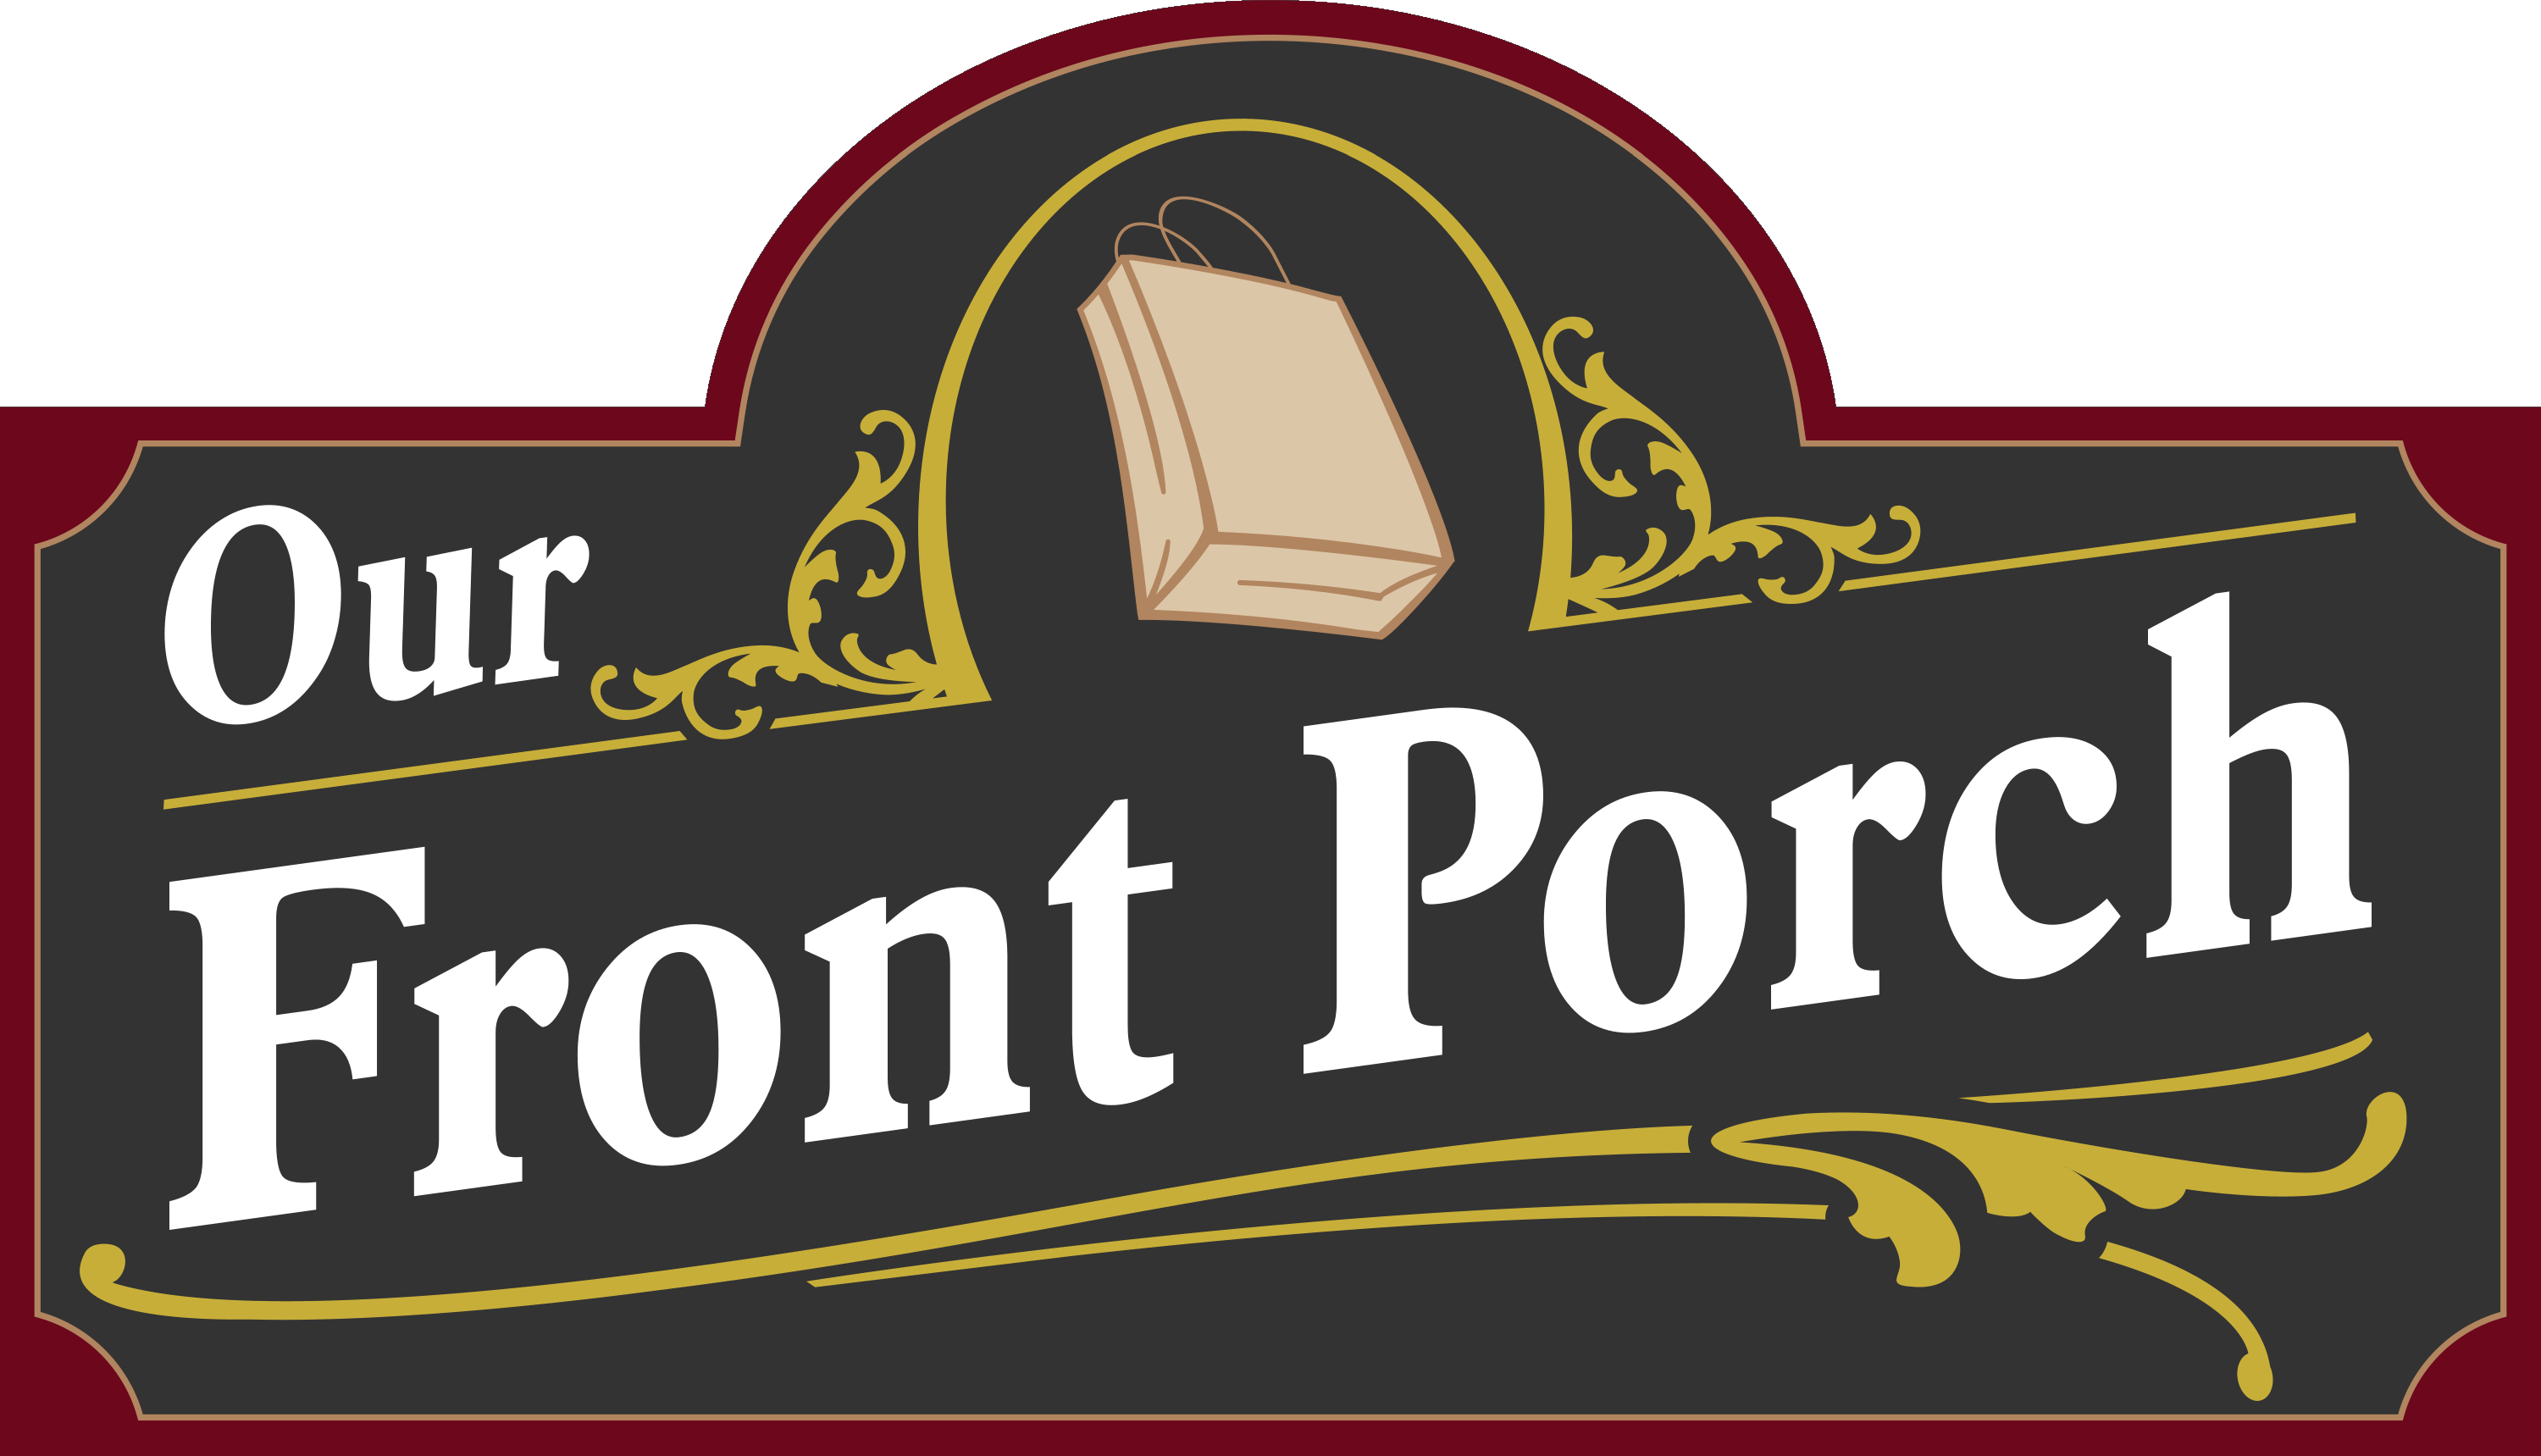 ourfrontporch-logo2016.png